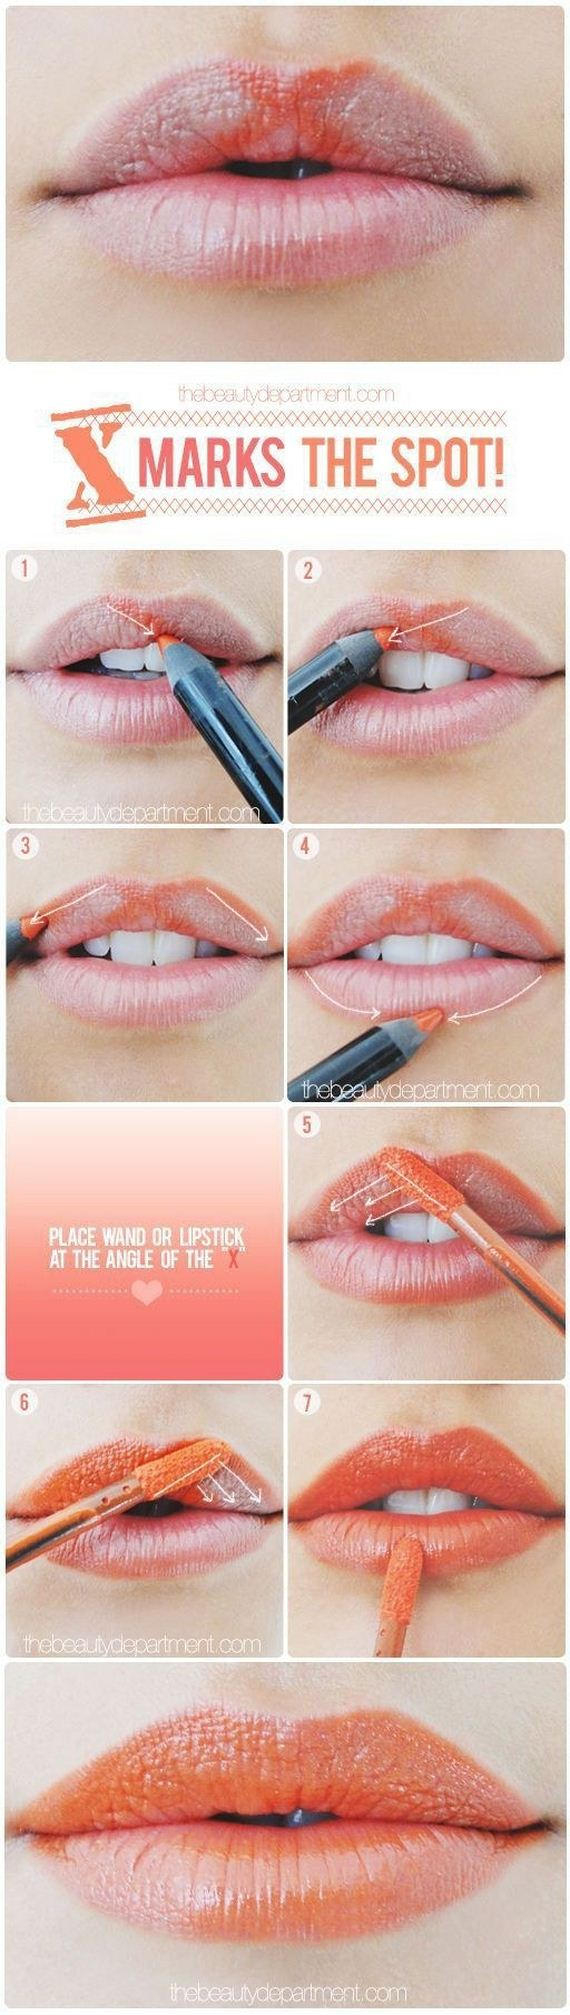 14-your-lipstick